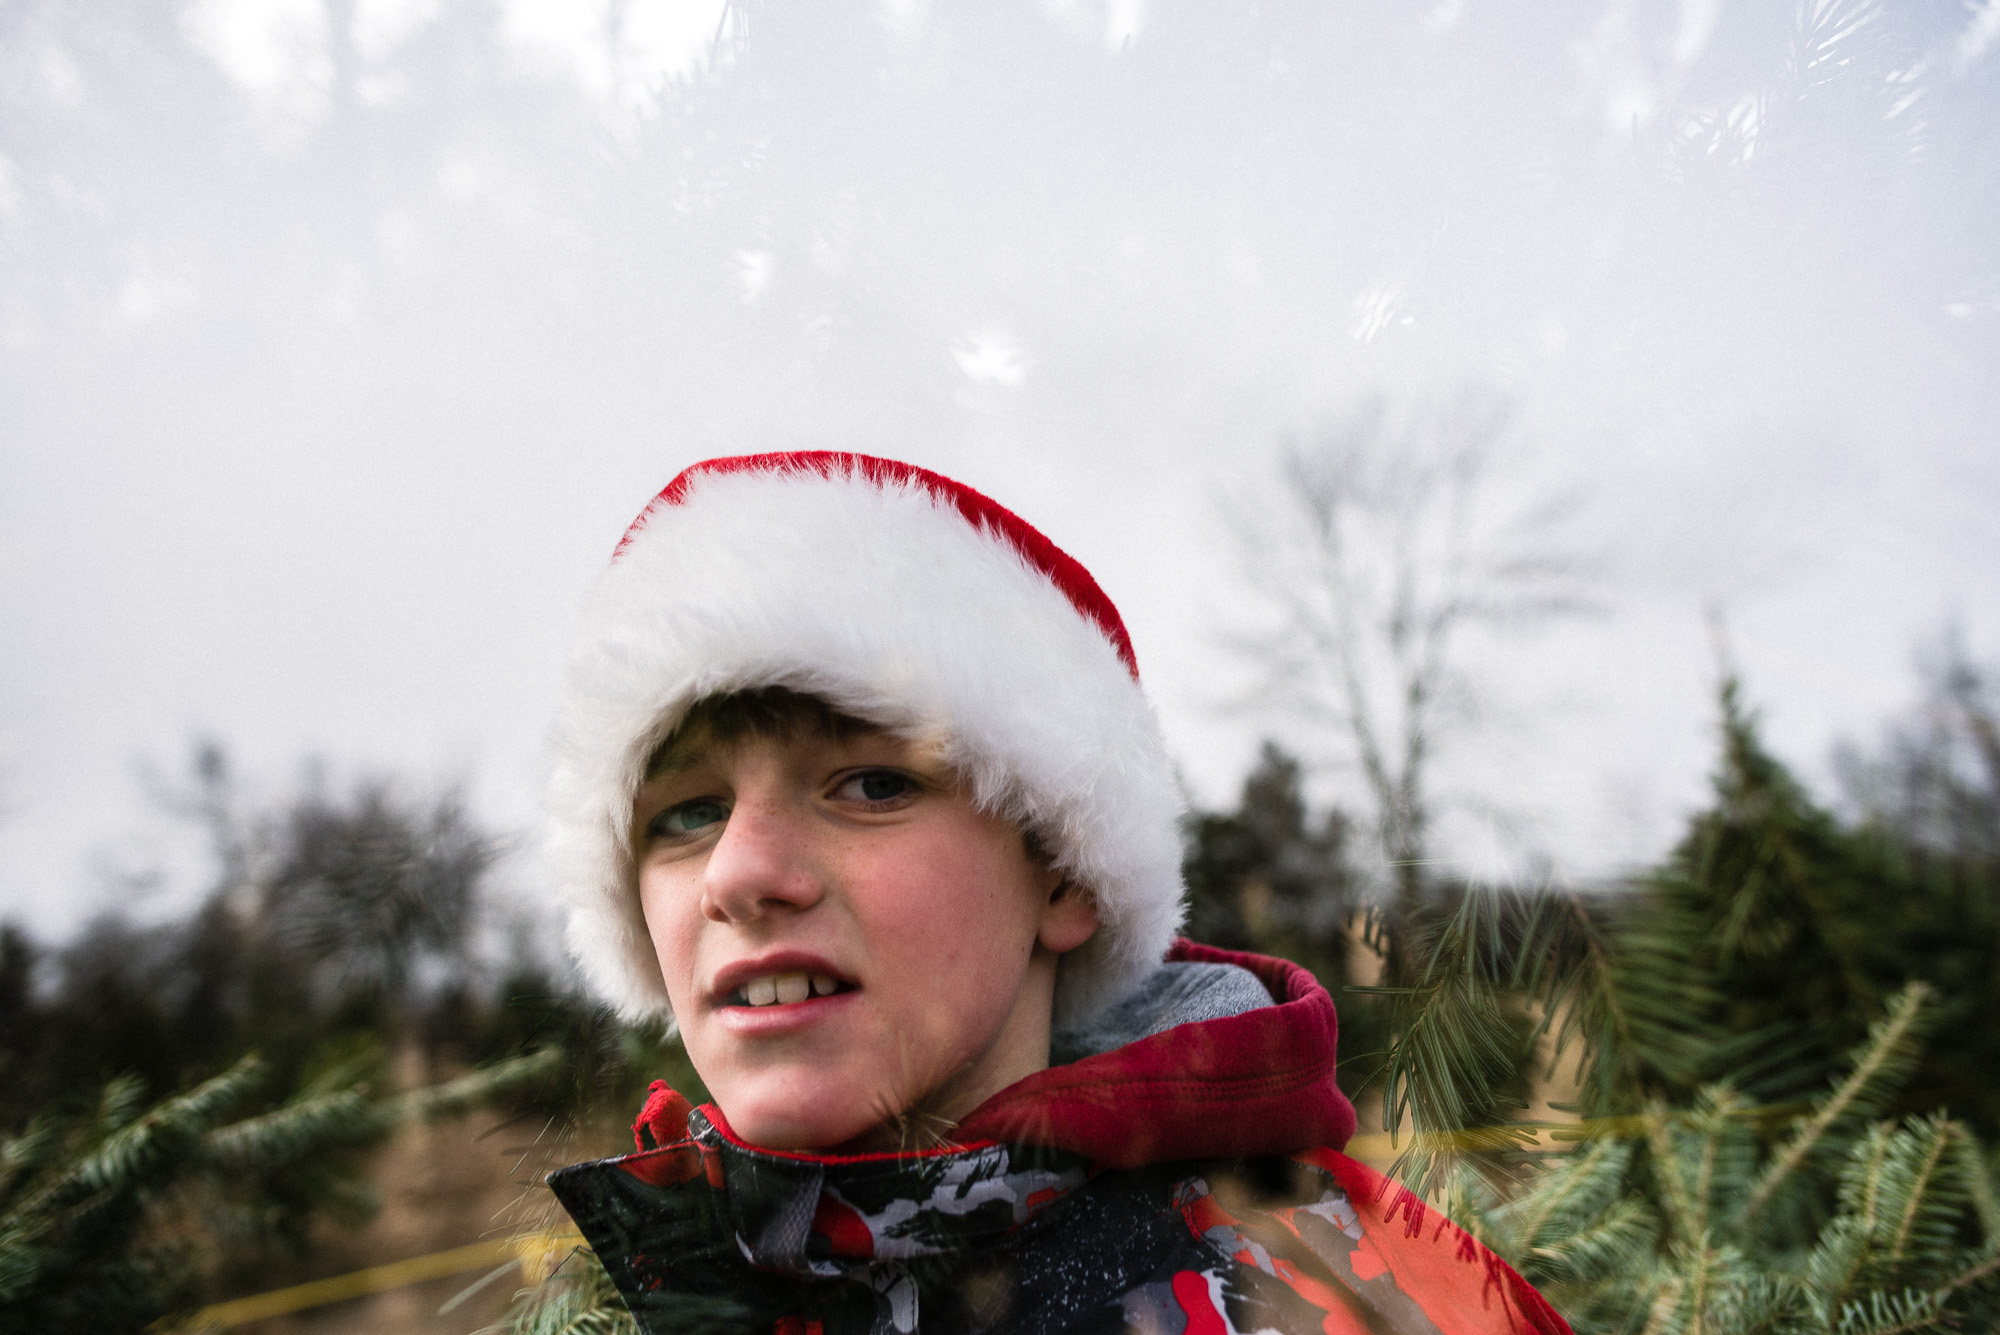 double exposure of a boy in a Santa hat